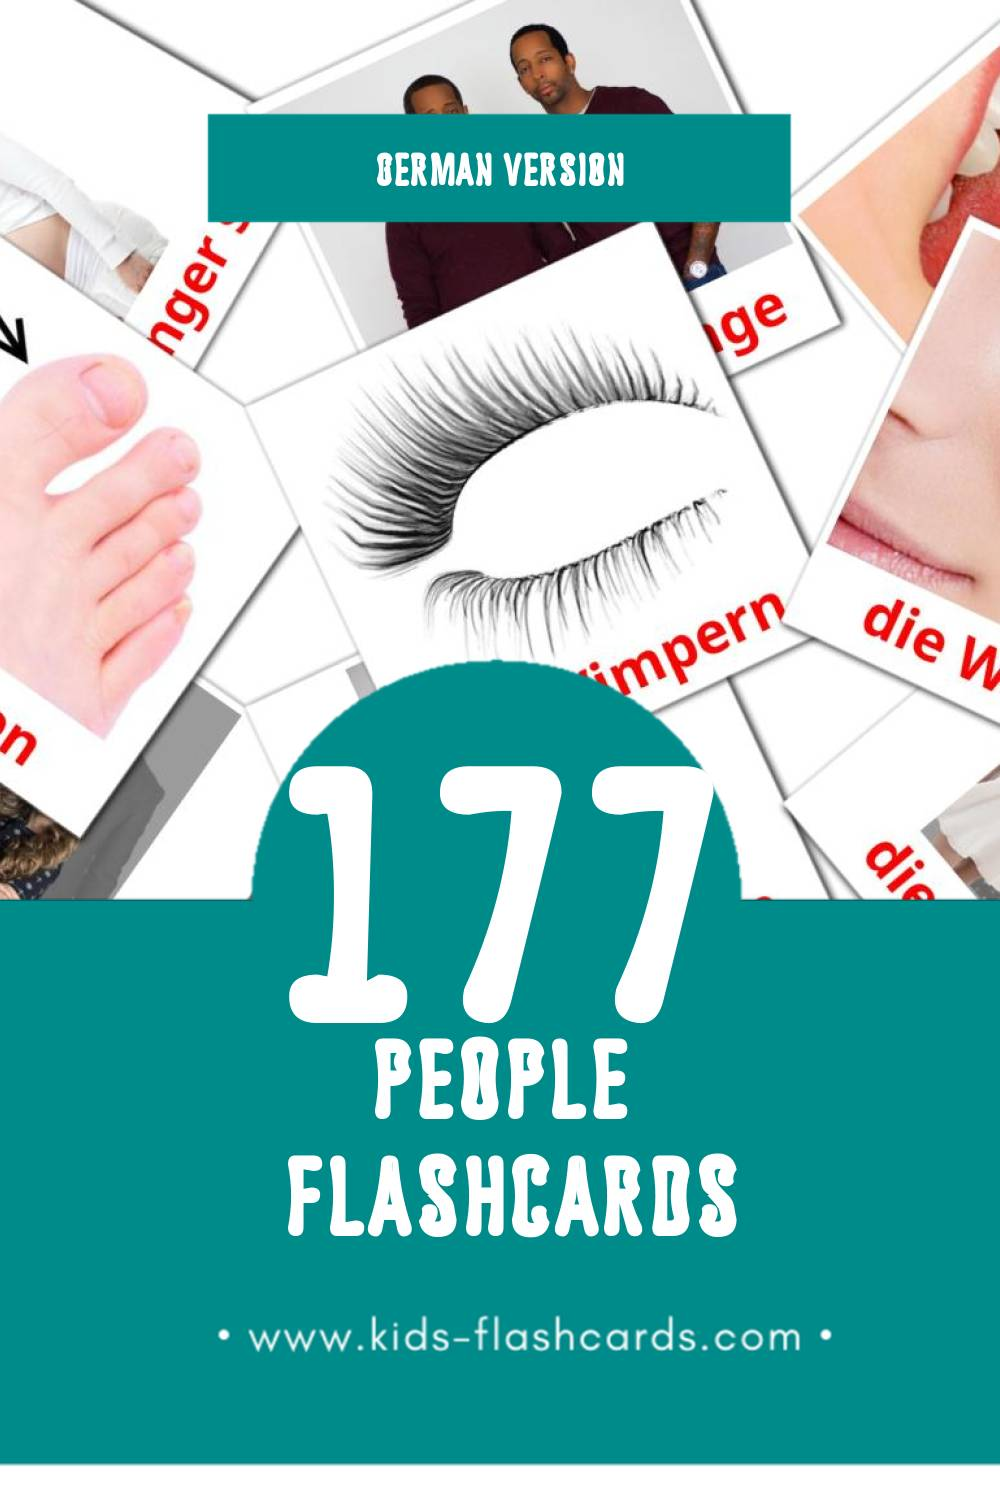 Visual Die Menschen Flashcards for Toddlers (58 cards in German)